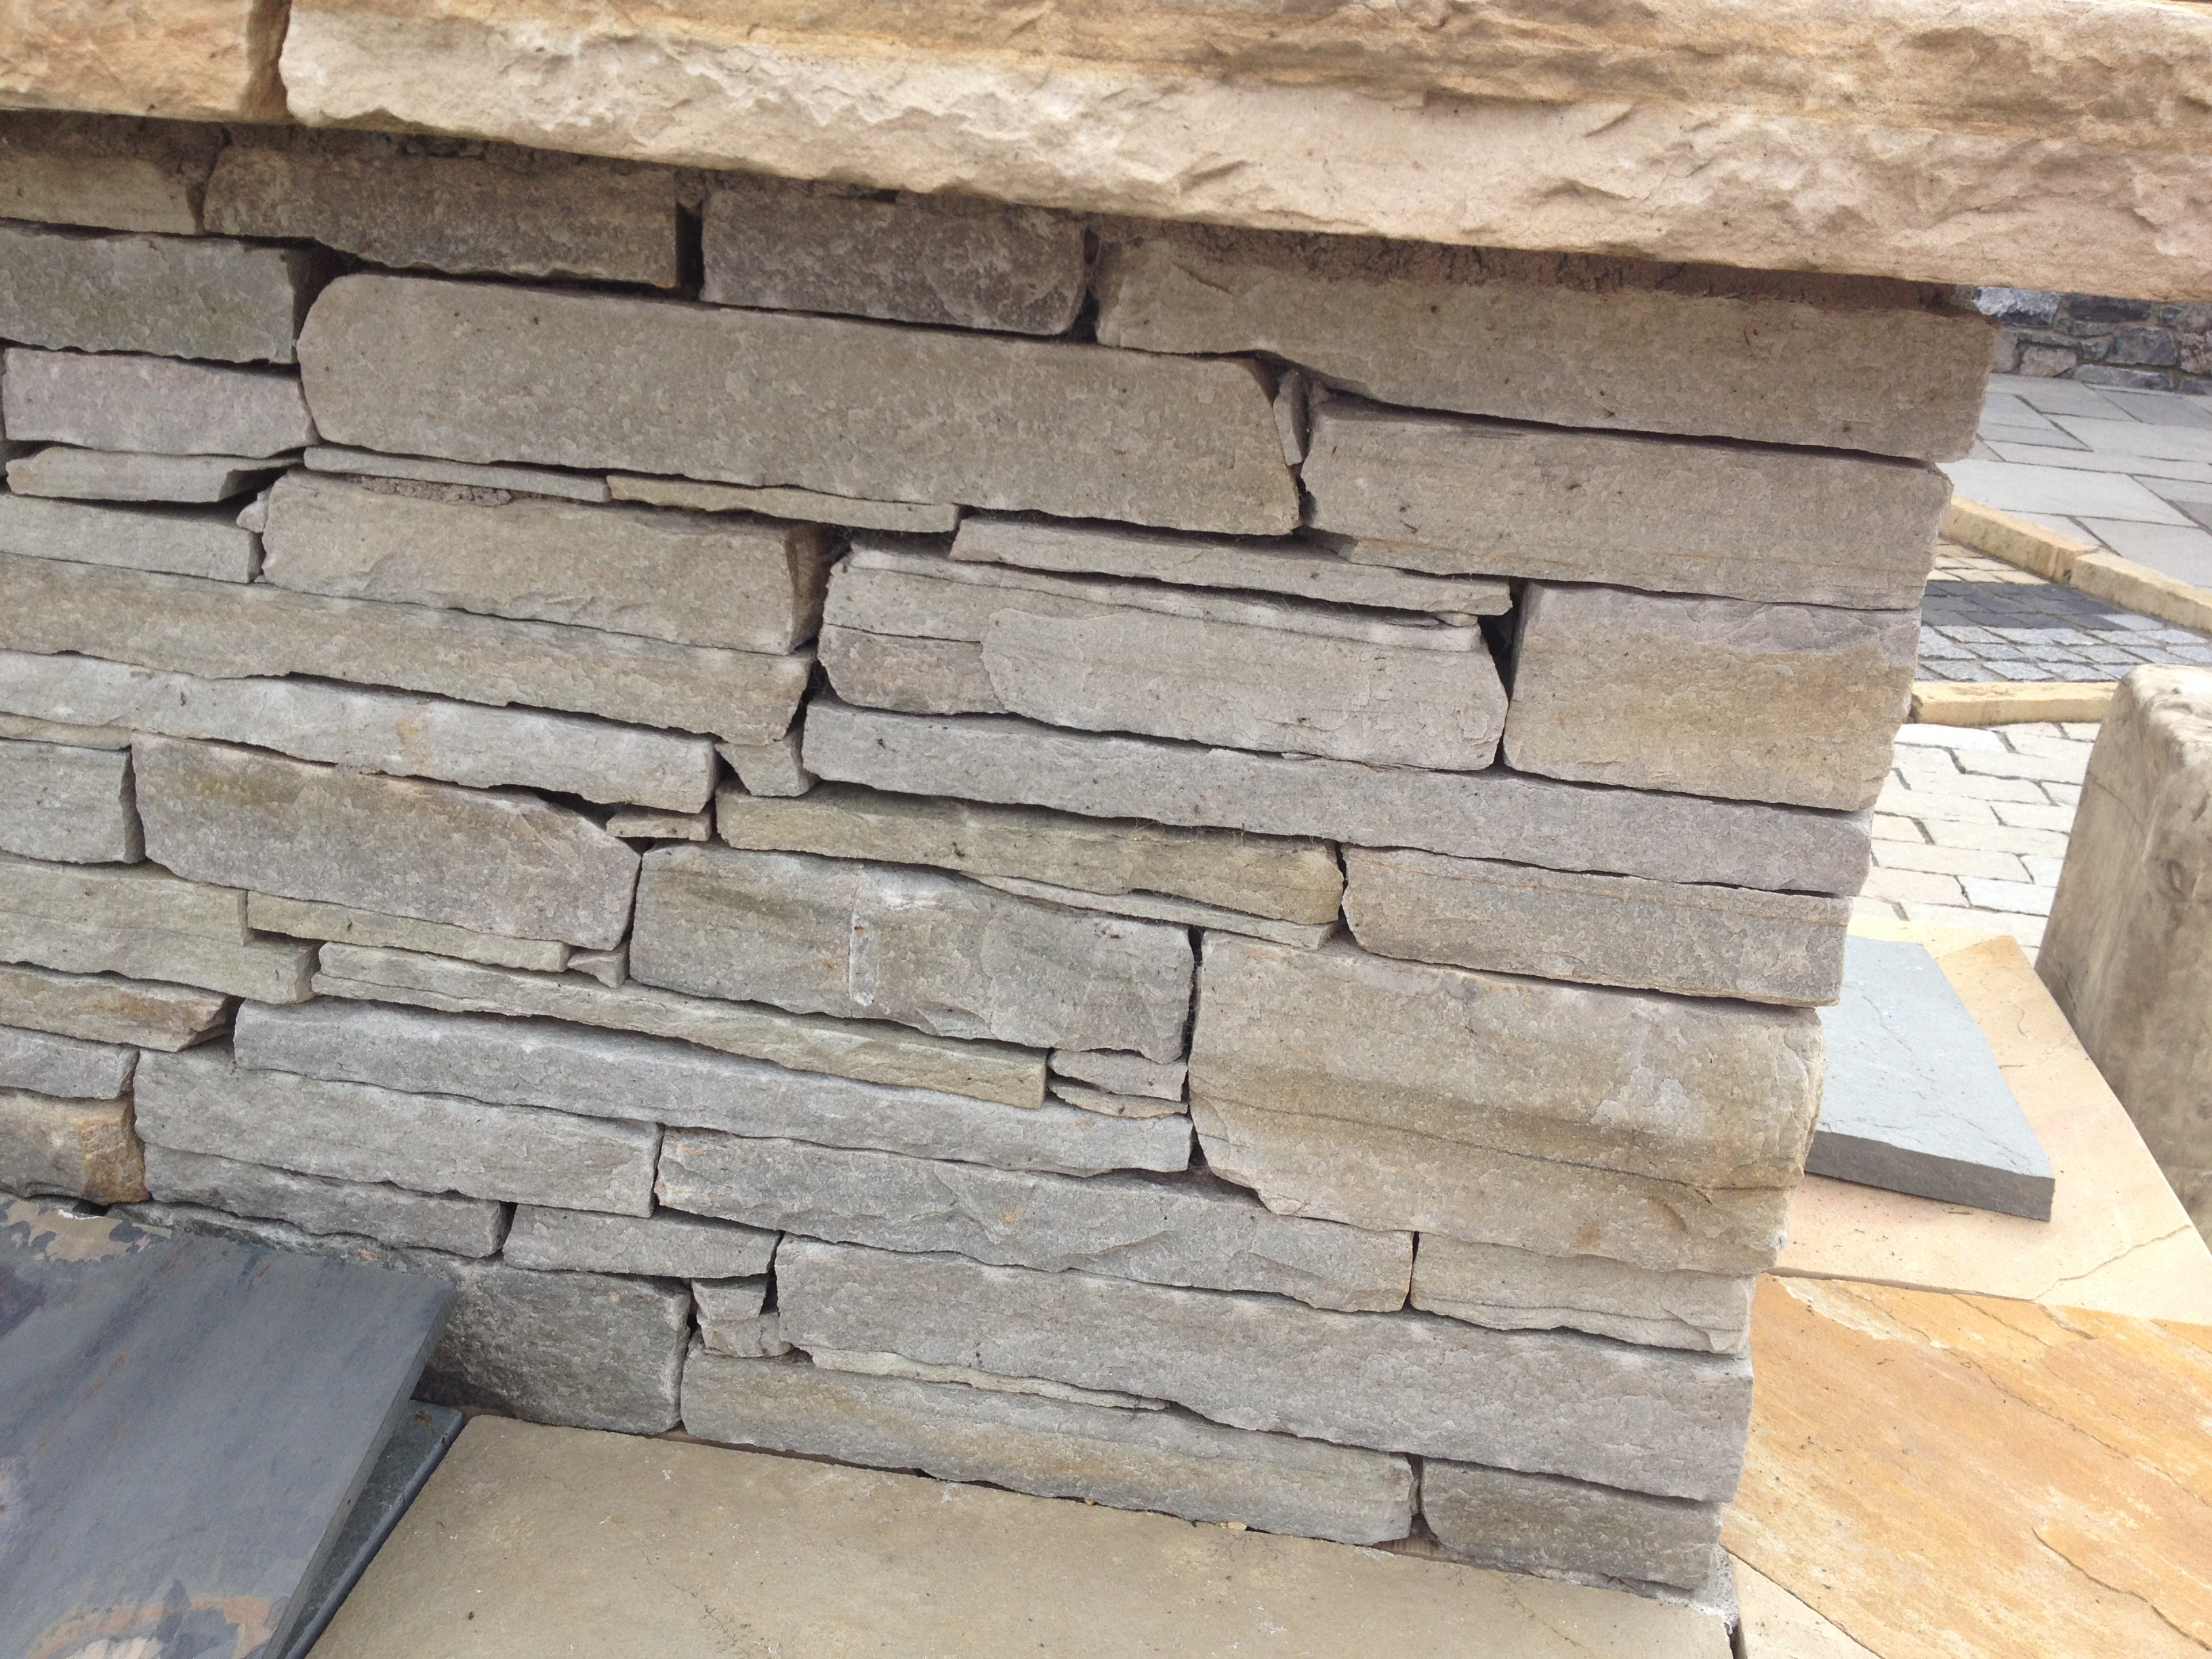 Silver Donegal Quartz Building Stone